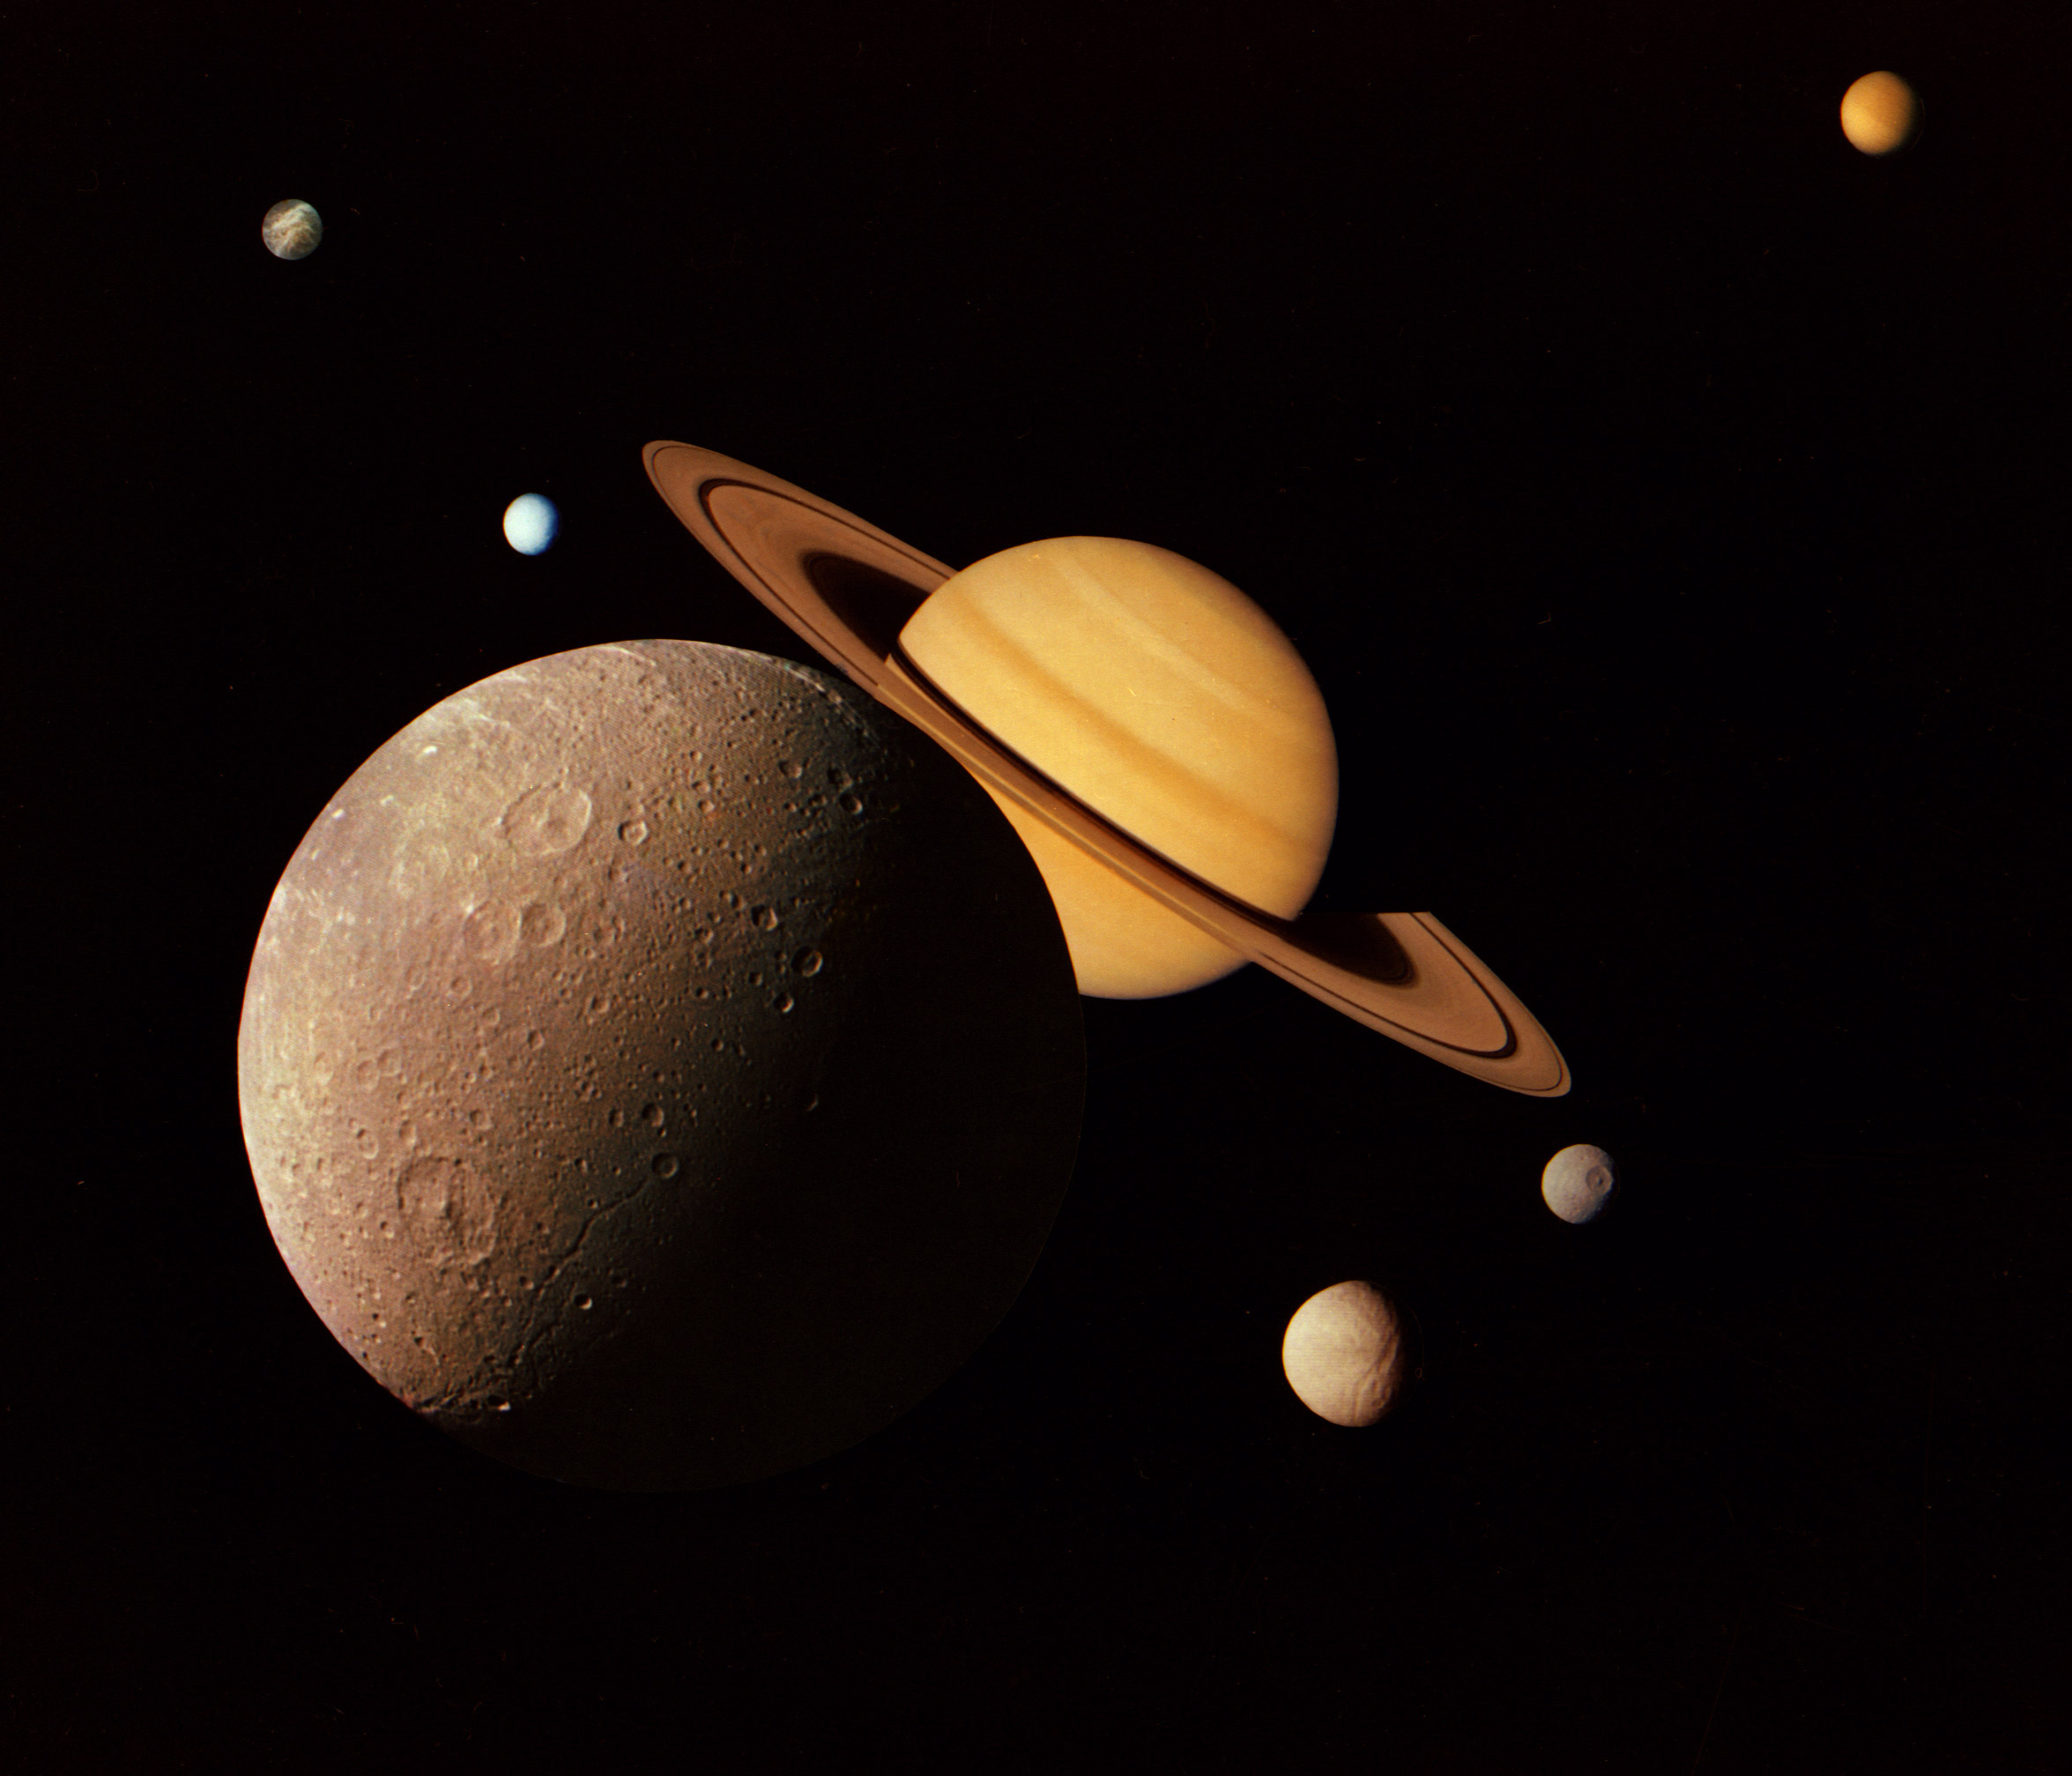 This montage of images of the Saturnian system was prepared from an assemblage of images taken by the Voyager 1 spacecraft during its Saturn encounter in November 1980. This artist's view shows Dione in the forefront, Saturn rising behind, Tethys and Mimas fading in the distance to the right, Enceladus and Rhea off Saturn's rings to the left, and Titan in its distant orbit at the top. The Voyager Project is managed for NASA by the Jet Propulsion Laboratory, Pasadena, California.